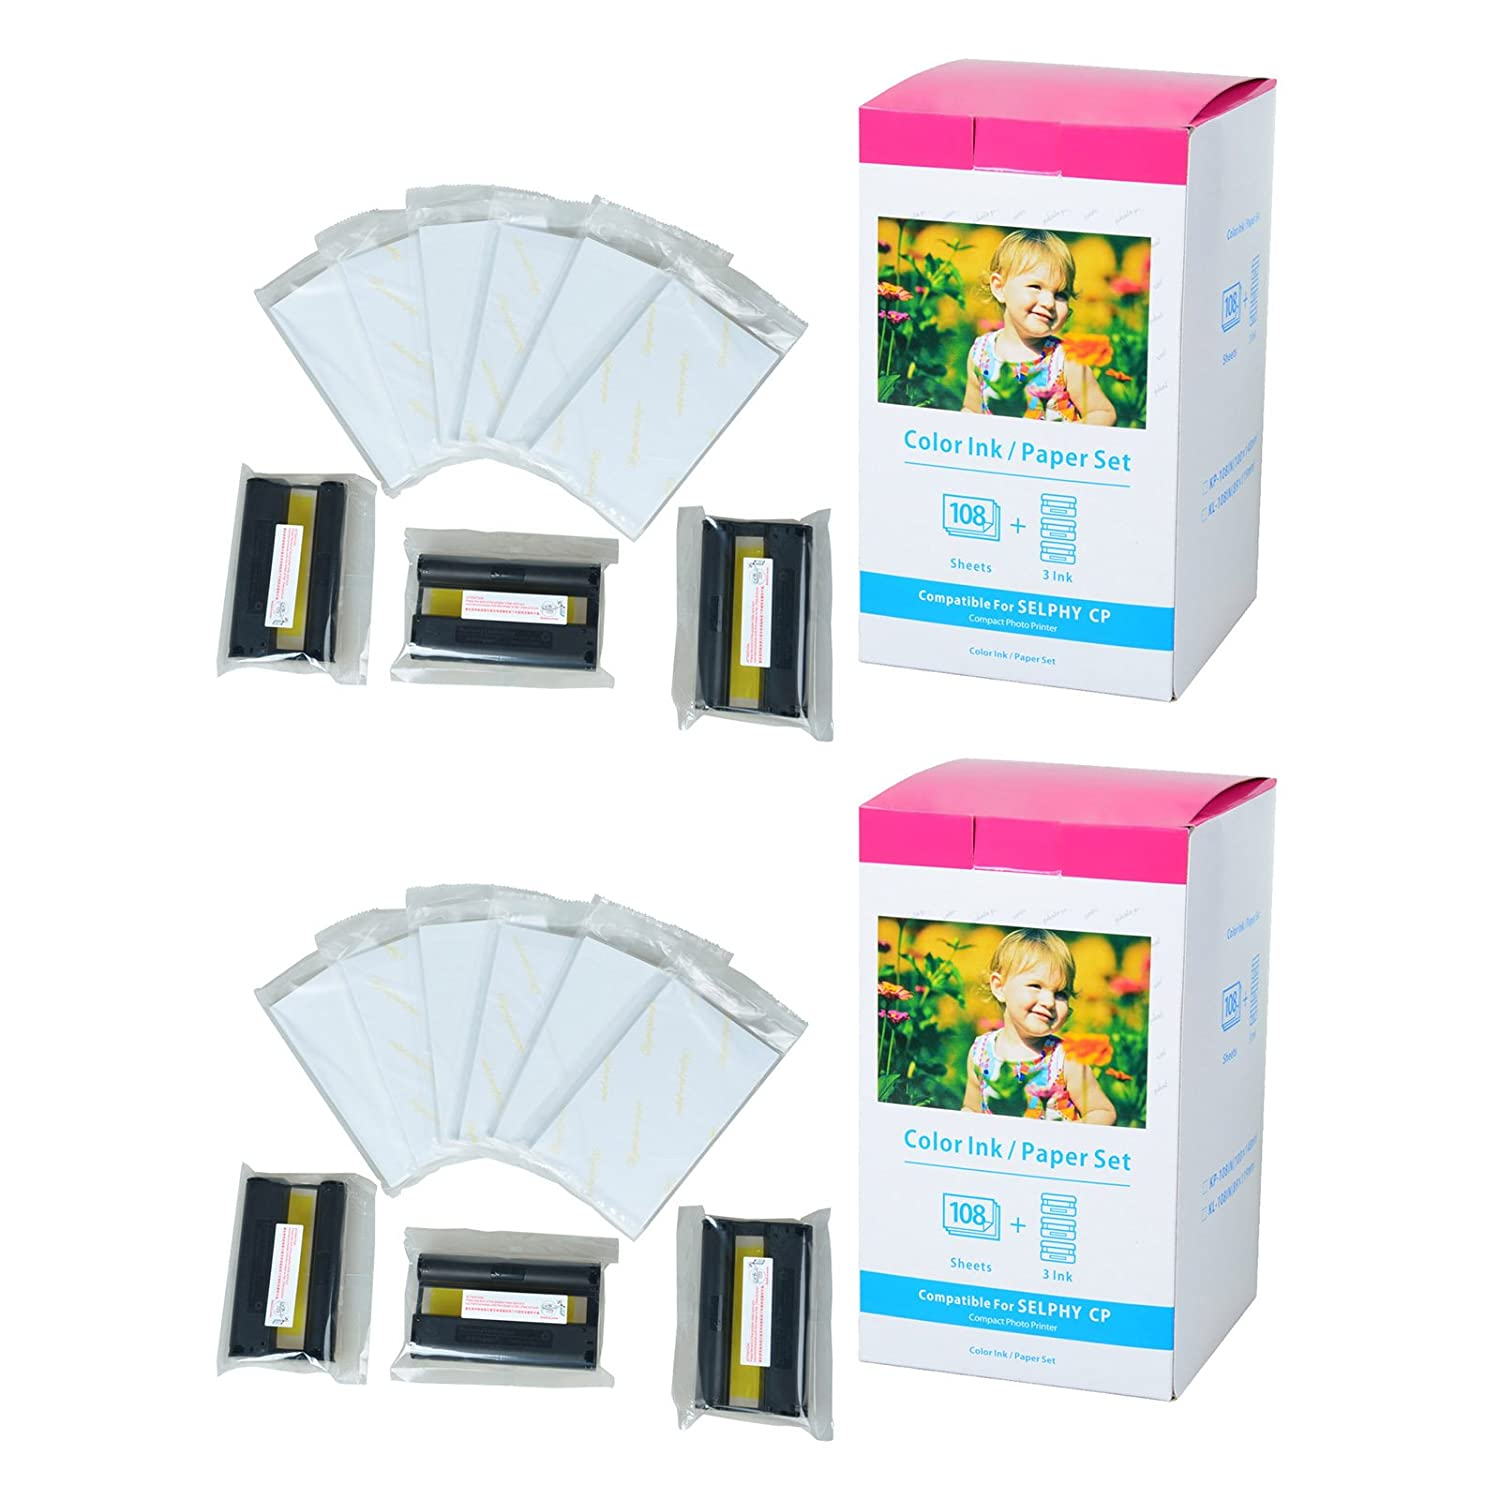 1set KP-108IN Color Ink Photo Paper for Canon Selphy CP760 CP790 CP710 CP720